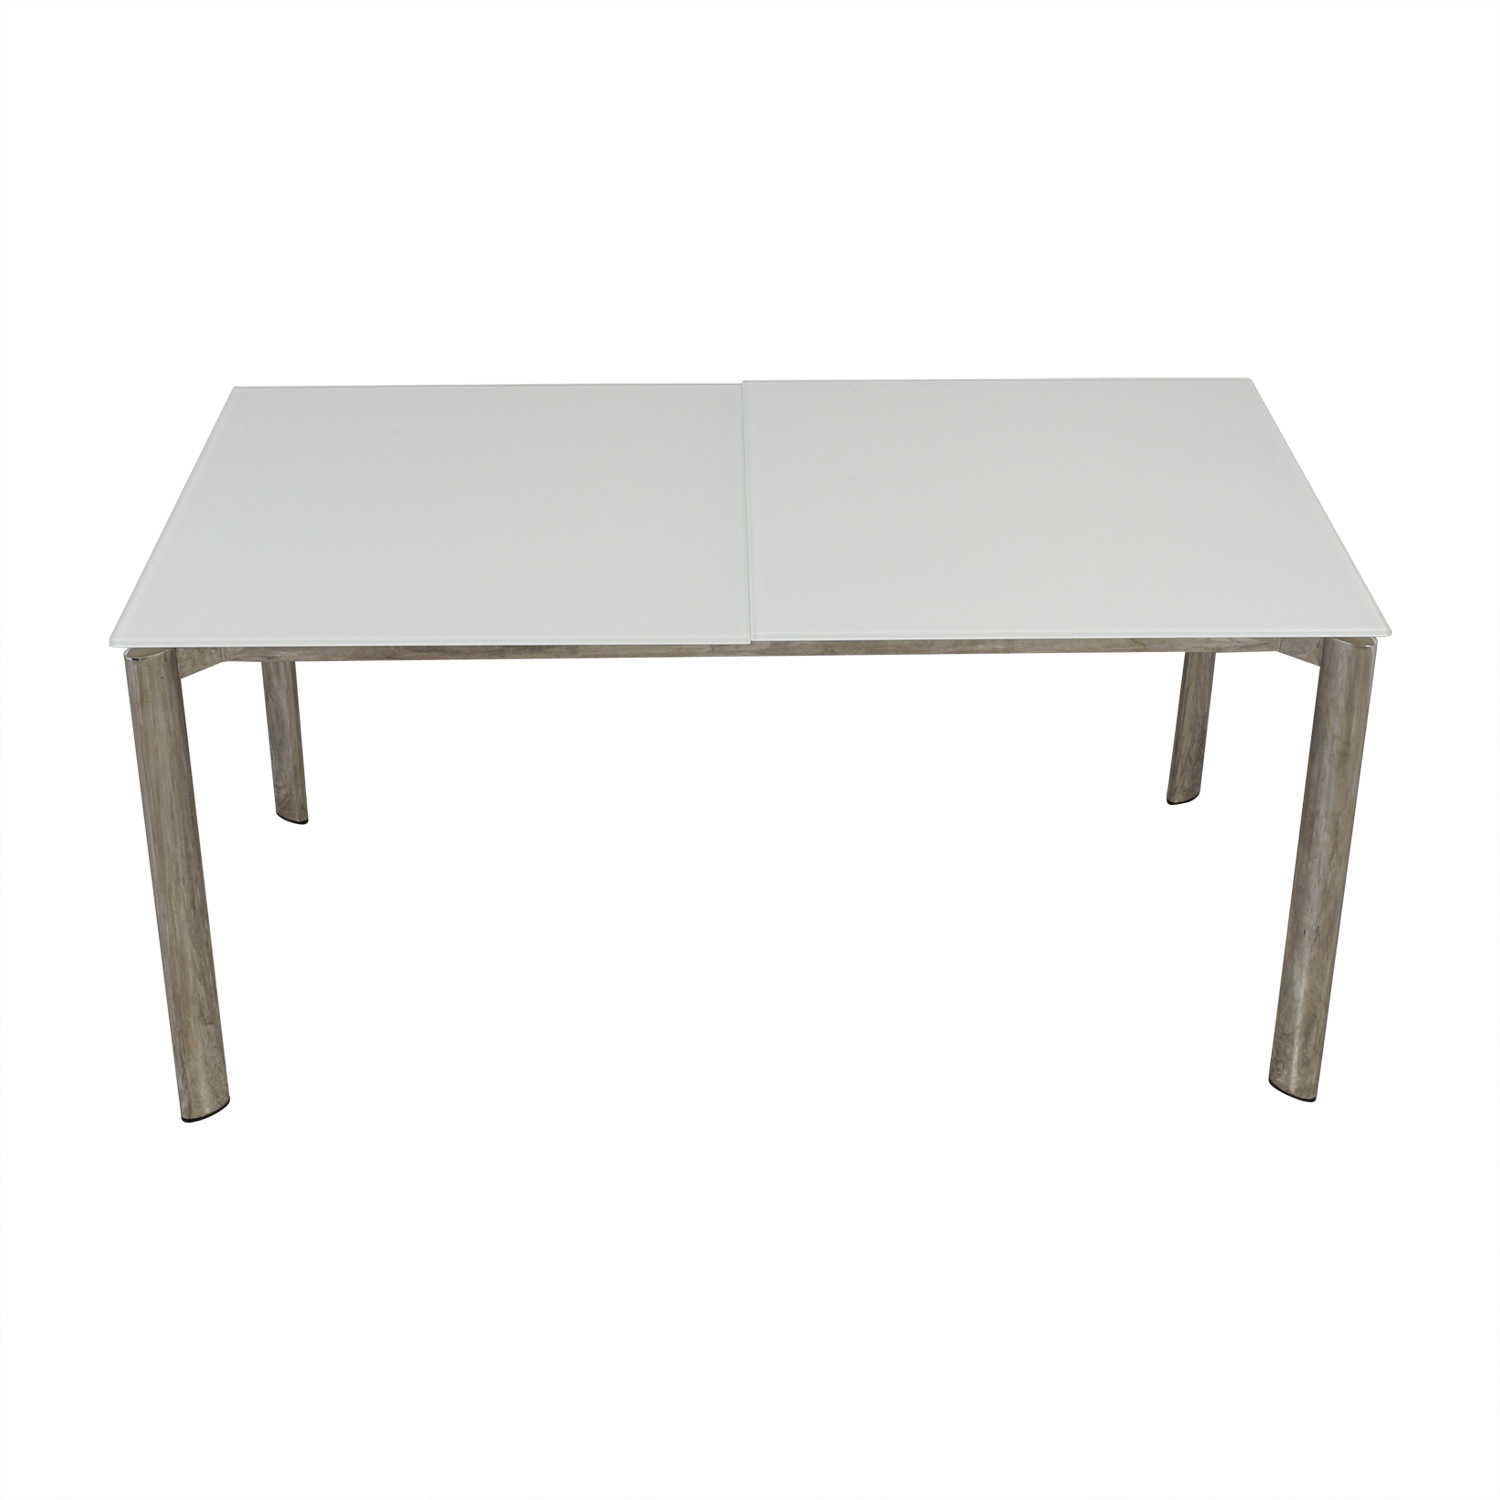 Modani Modani Expandable White Glass and Chrome Dining Table dimensions